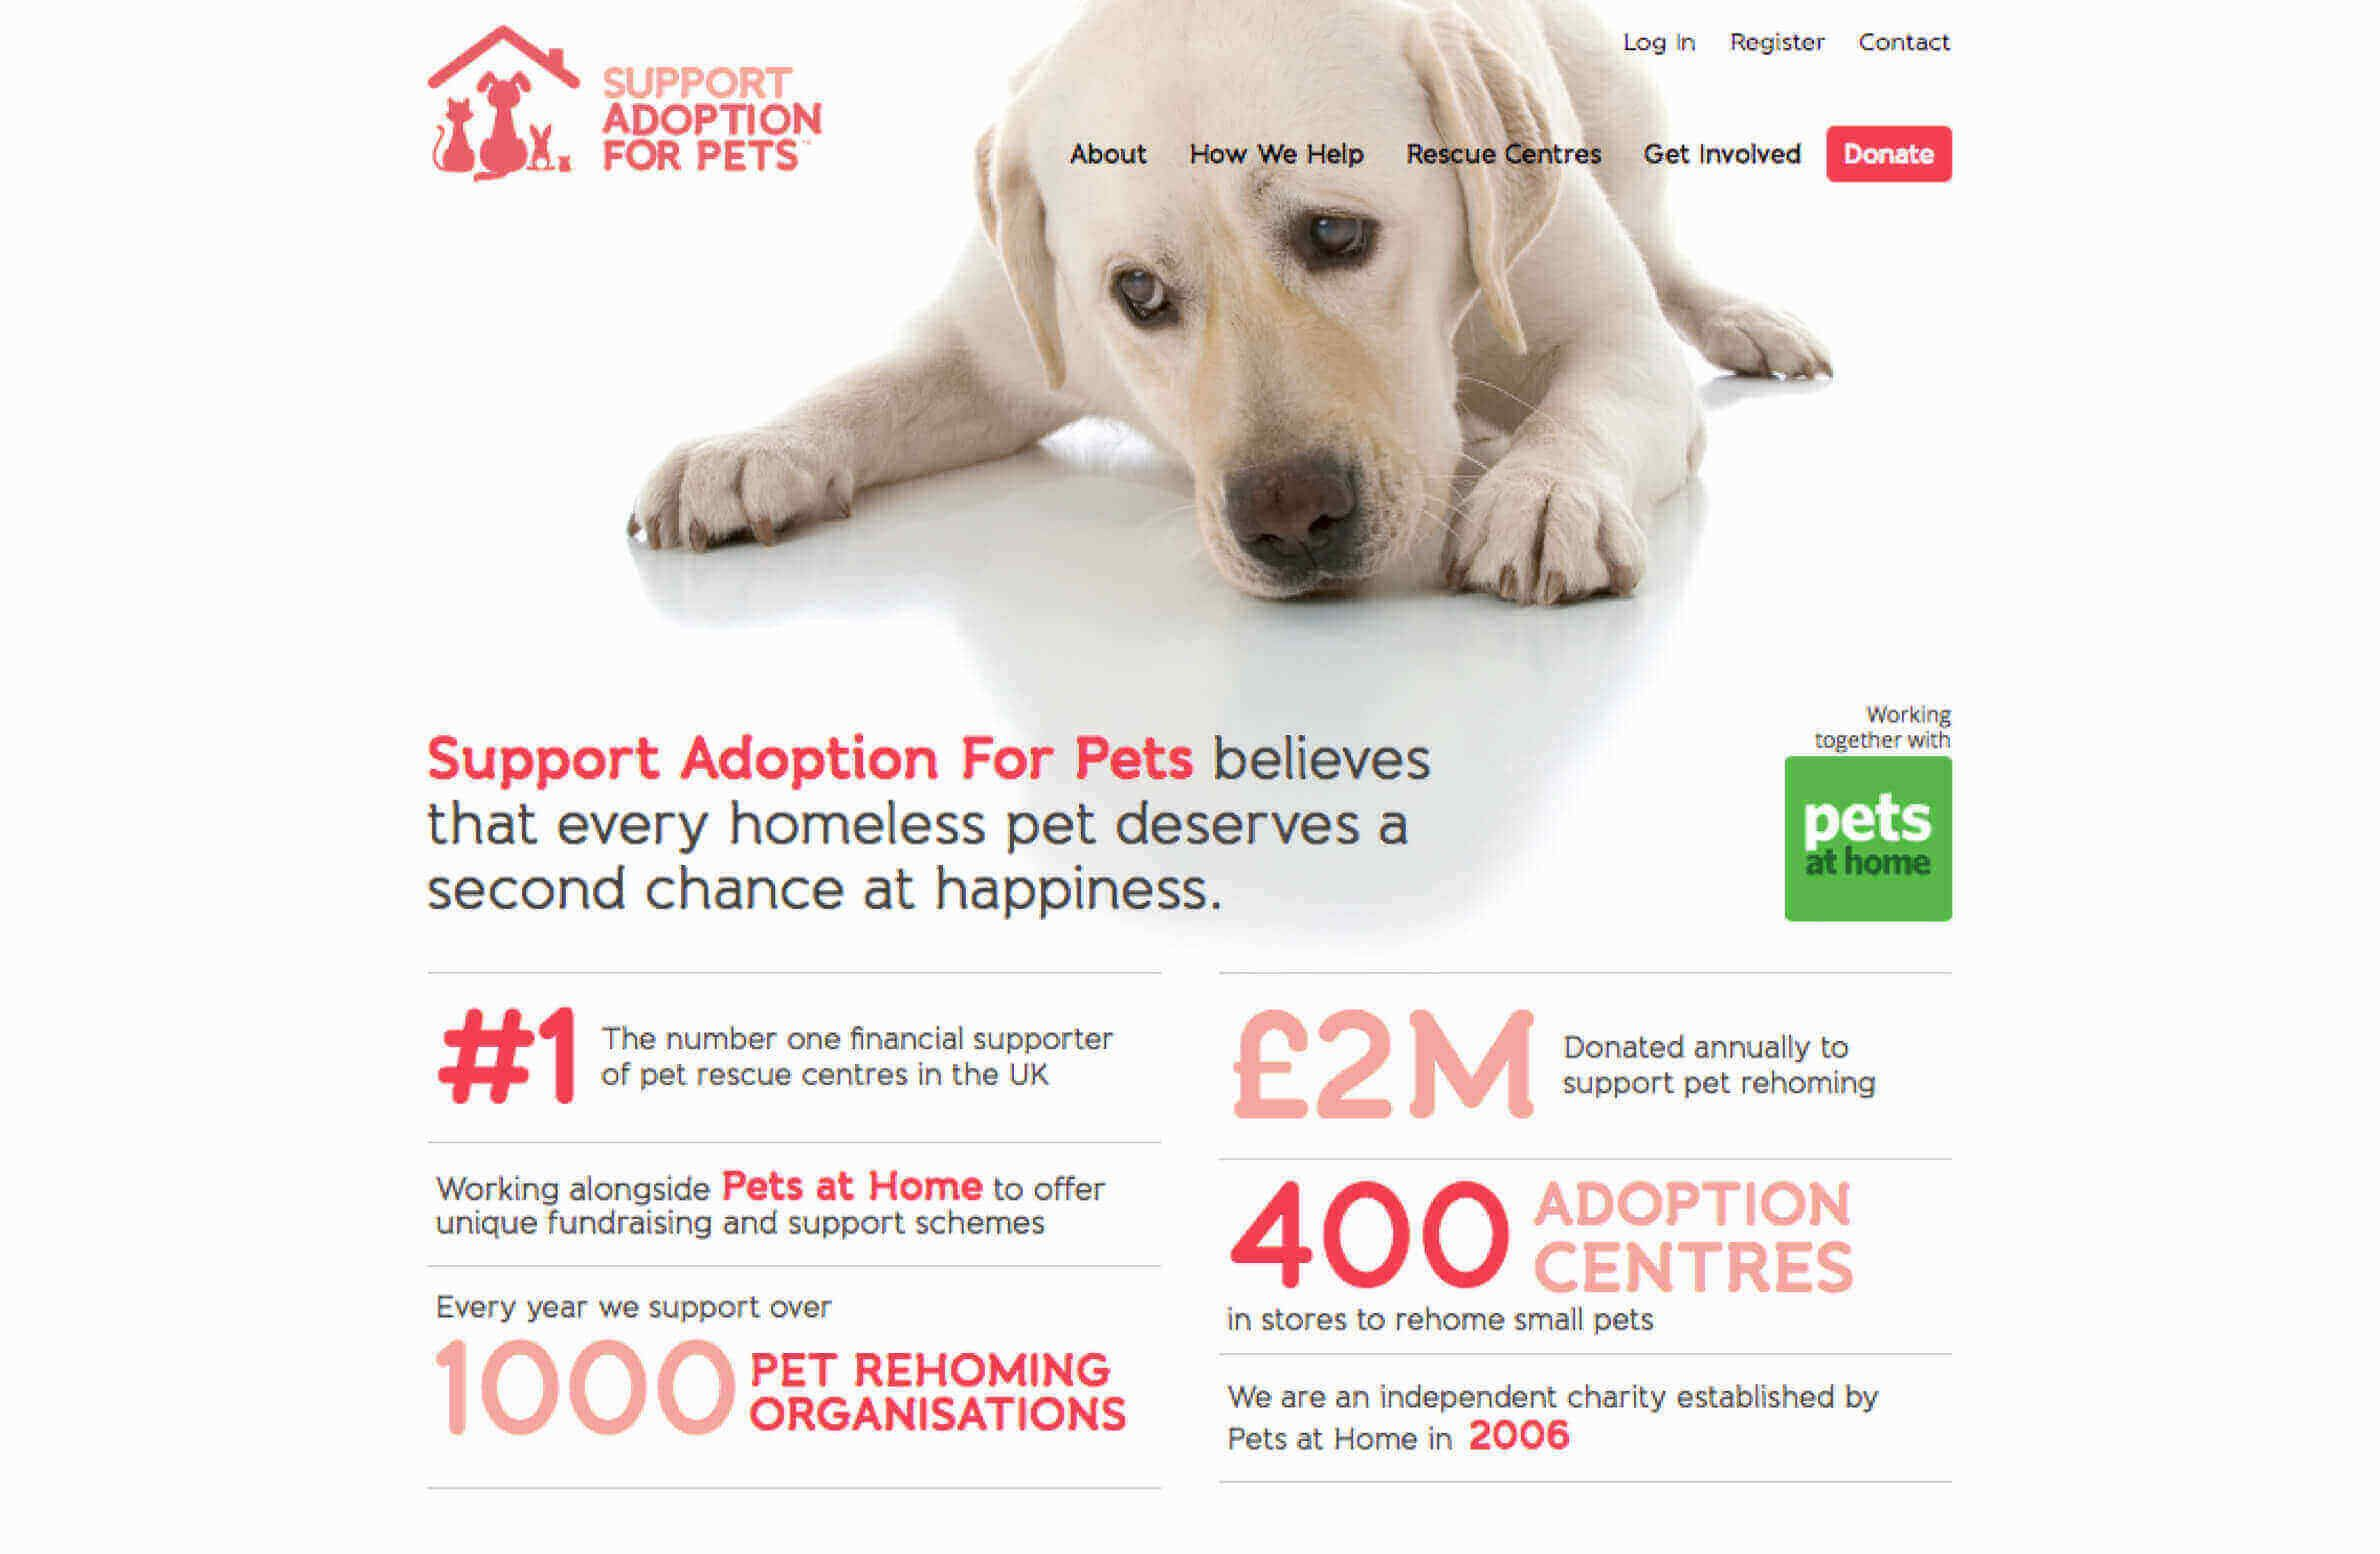 Closely Allied To Pets At Home Support Adoption For Pets Are The Charity That Rehome The Most Pets Annually And They Ve Trusted Us As The Pets Adoption Animal Rescue Center